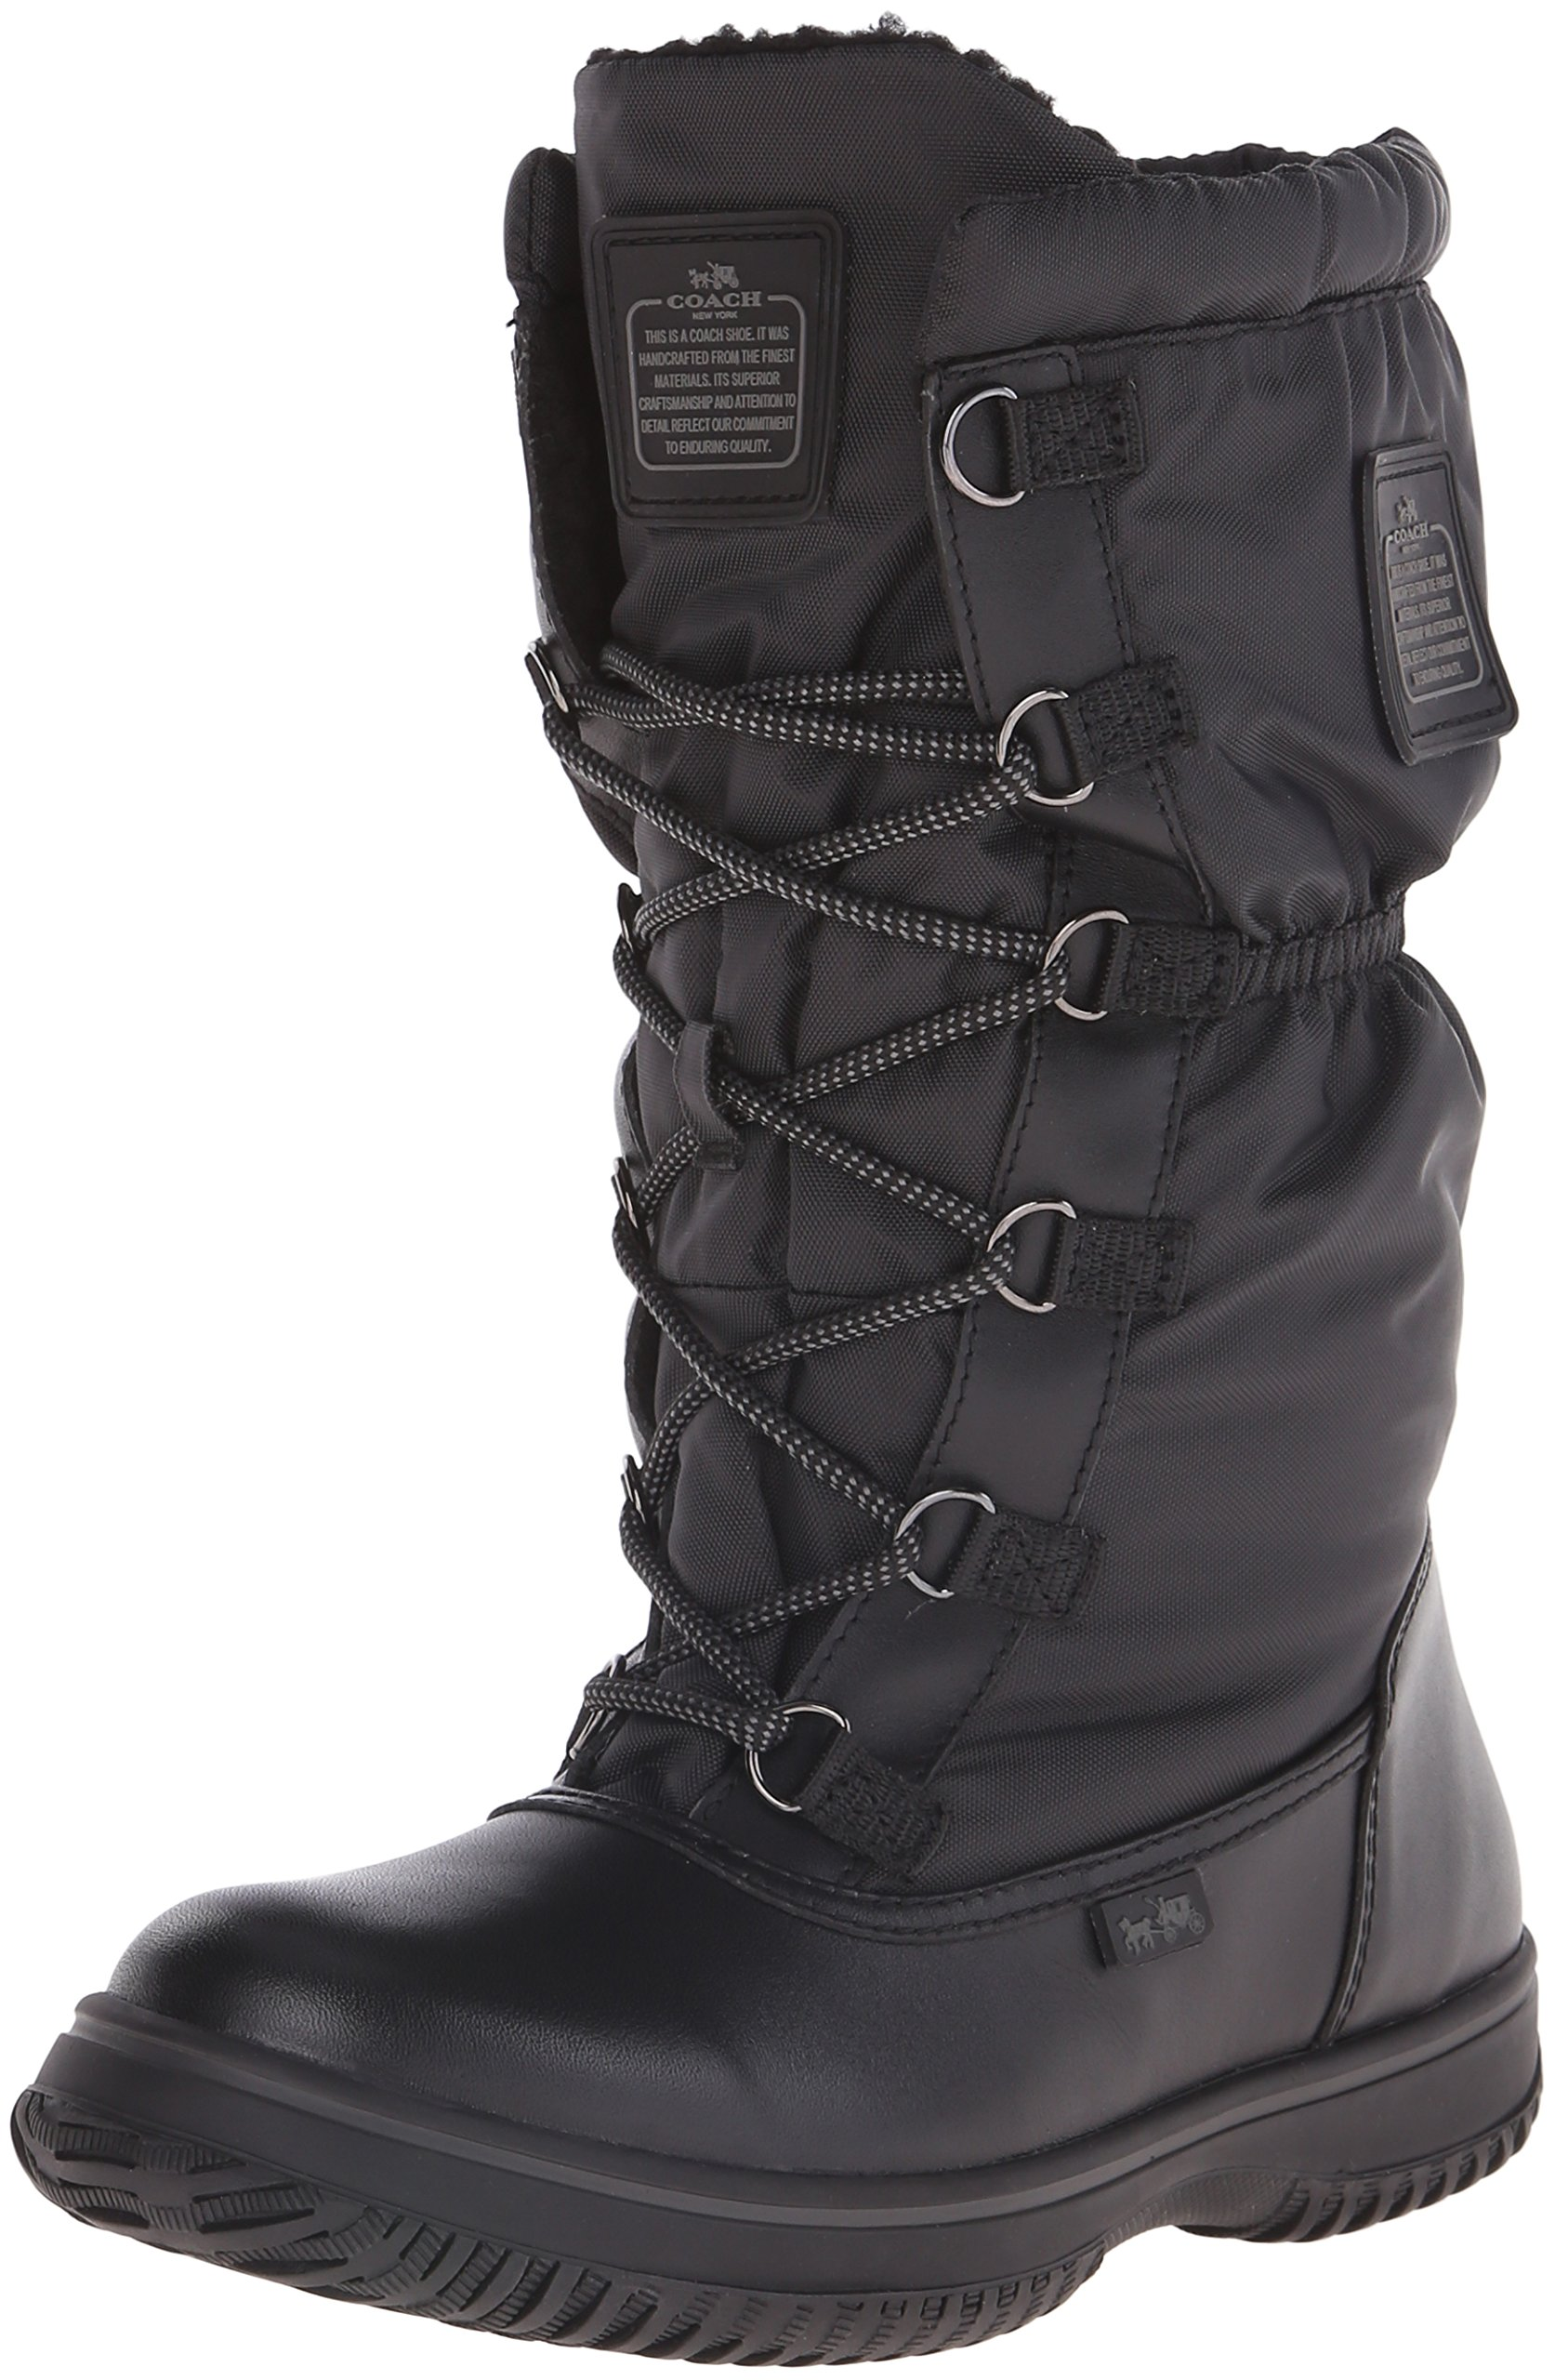 Coach Women¡¯s Sage Black/Black Lace-Up Cold Weather Boots 8.5 (B) M, Style A9177 by Coach